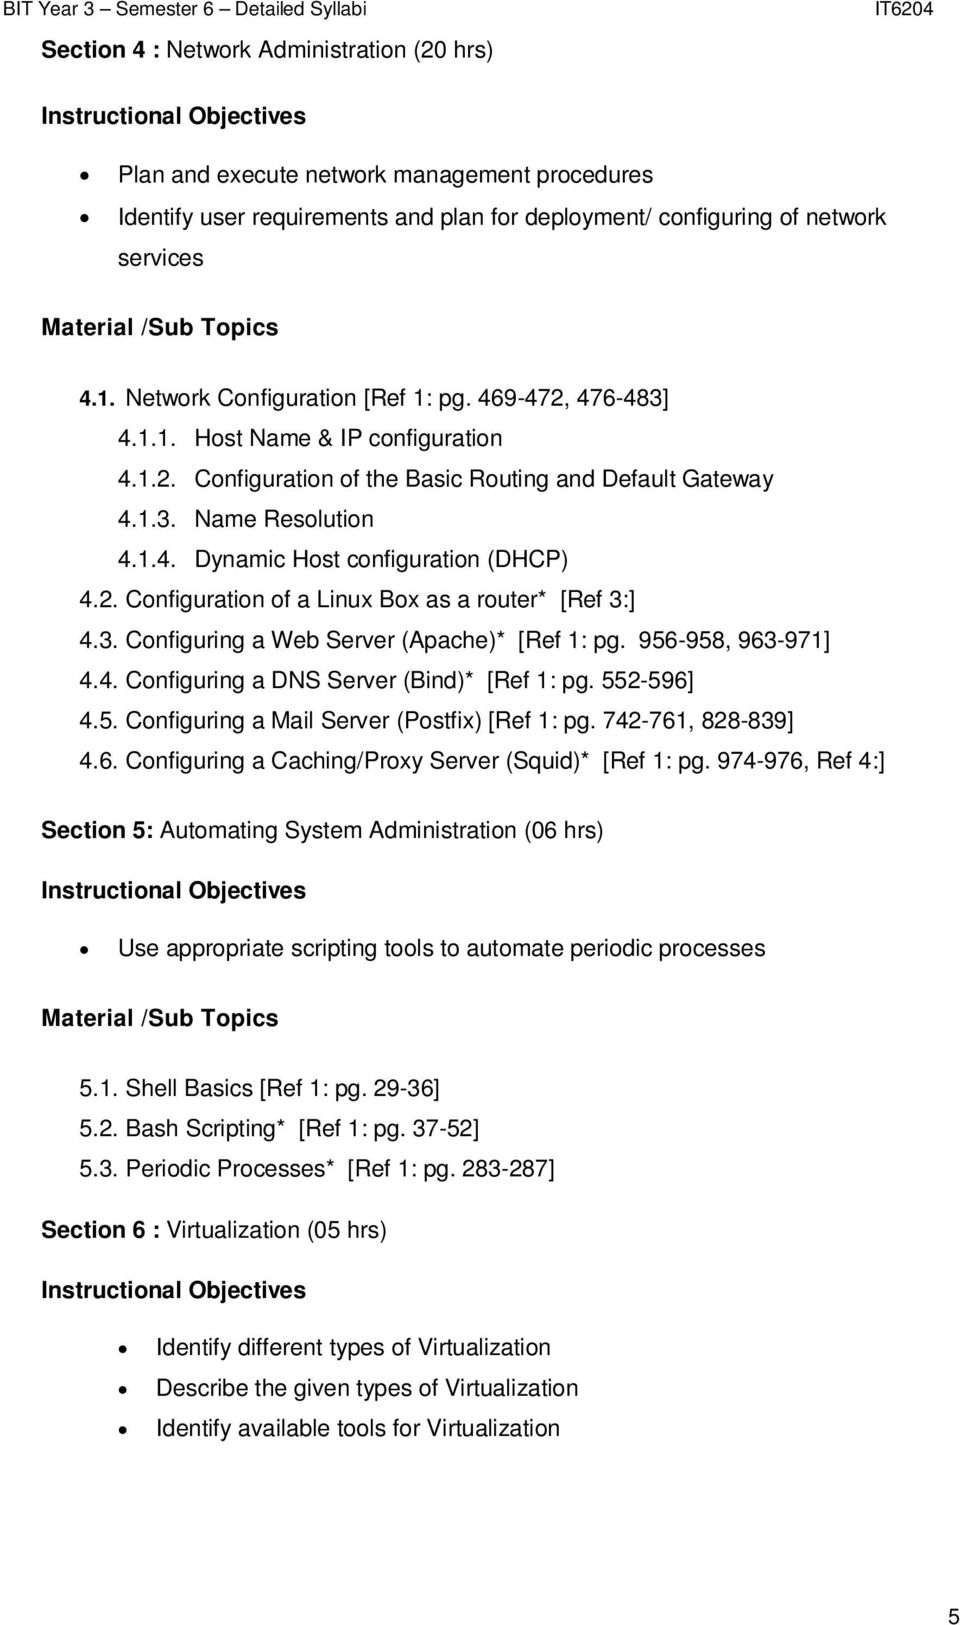 IT6204 Systems & Network Administration  (Optional) - PDF